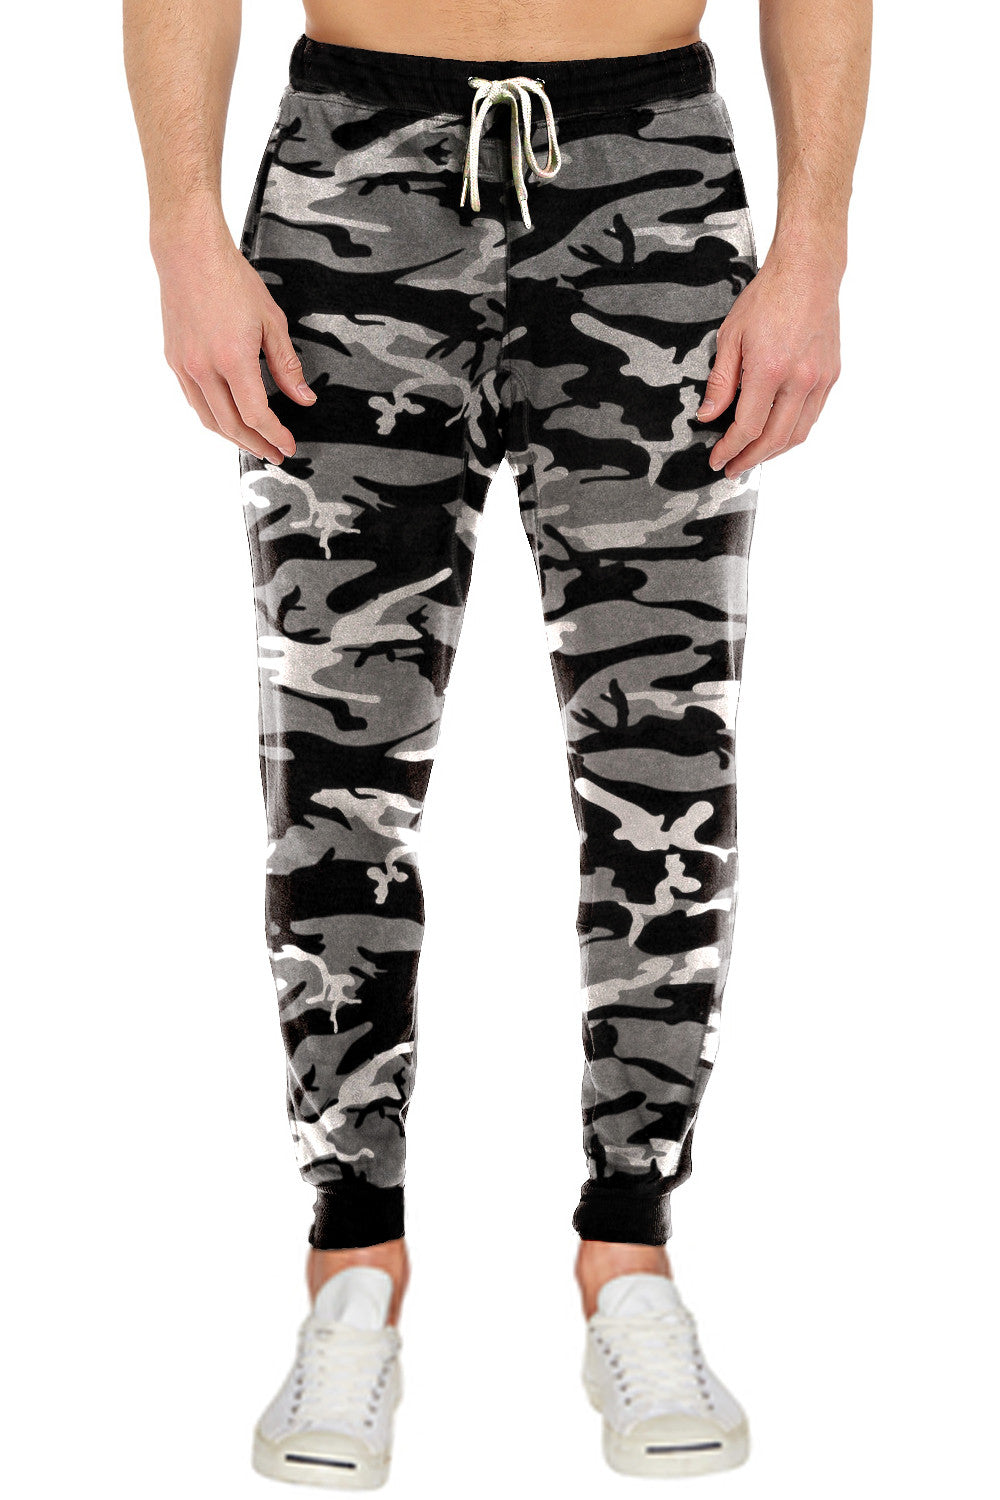 French Terry Fleece Pants Sweatpants Joggers Camo Camoflauge Military